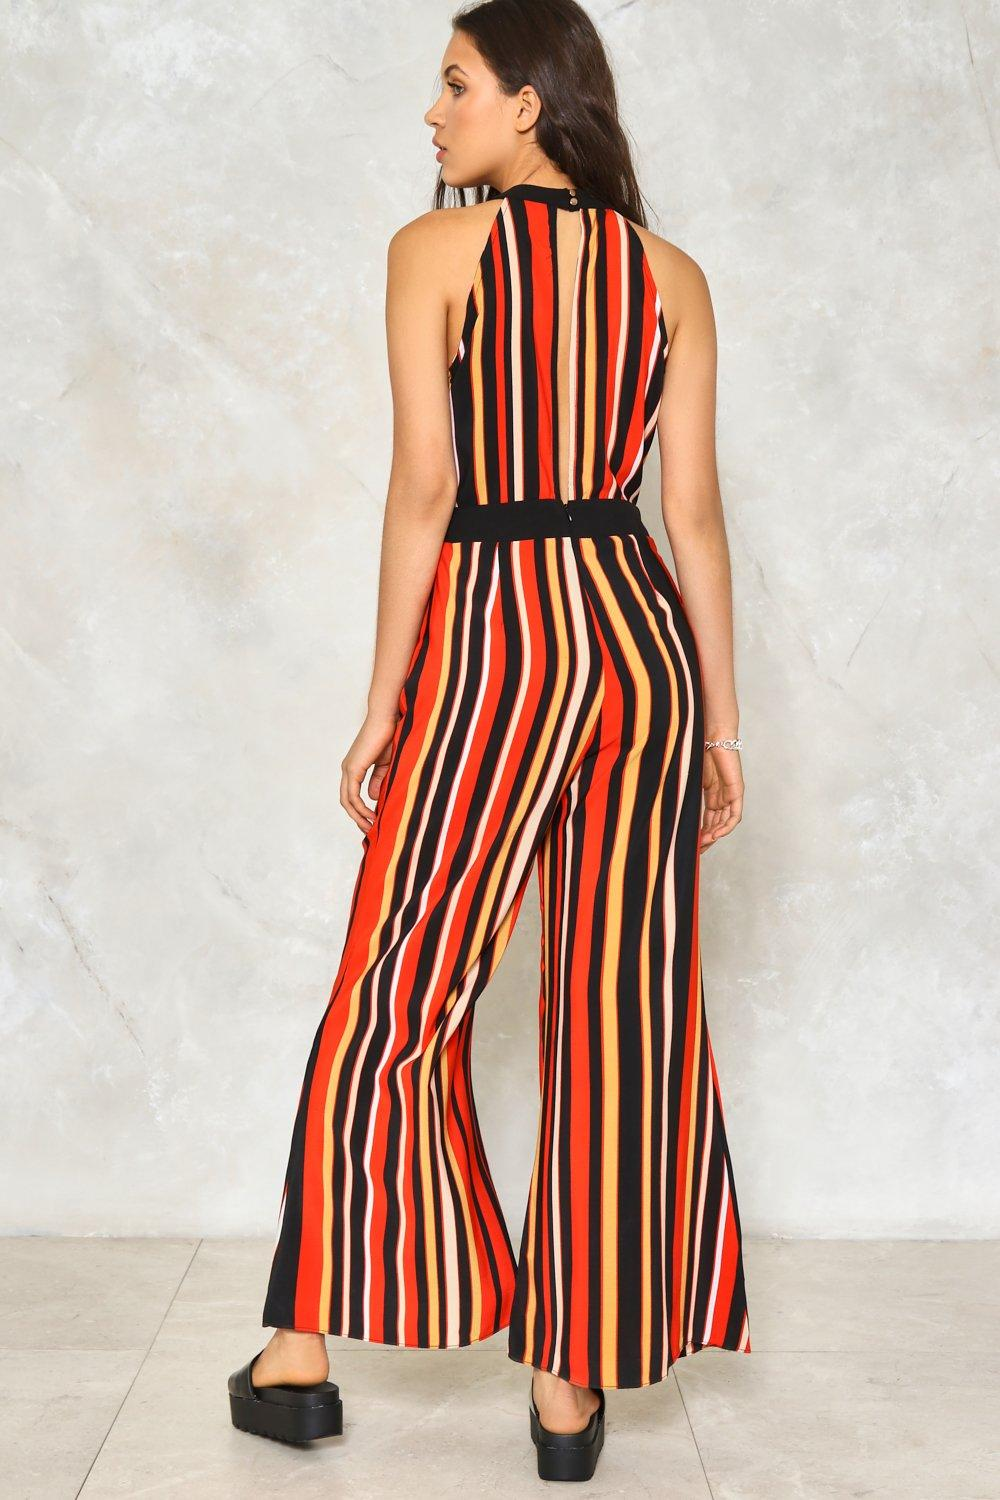 937310413c07 All The Stripe Moves Jumpsuit. Hover to zoom